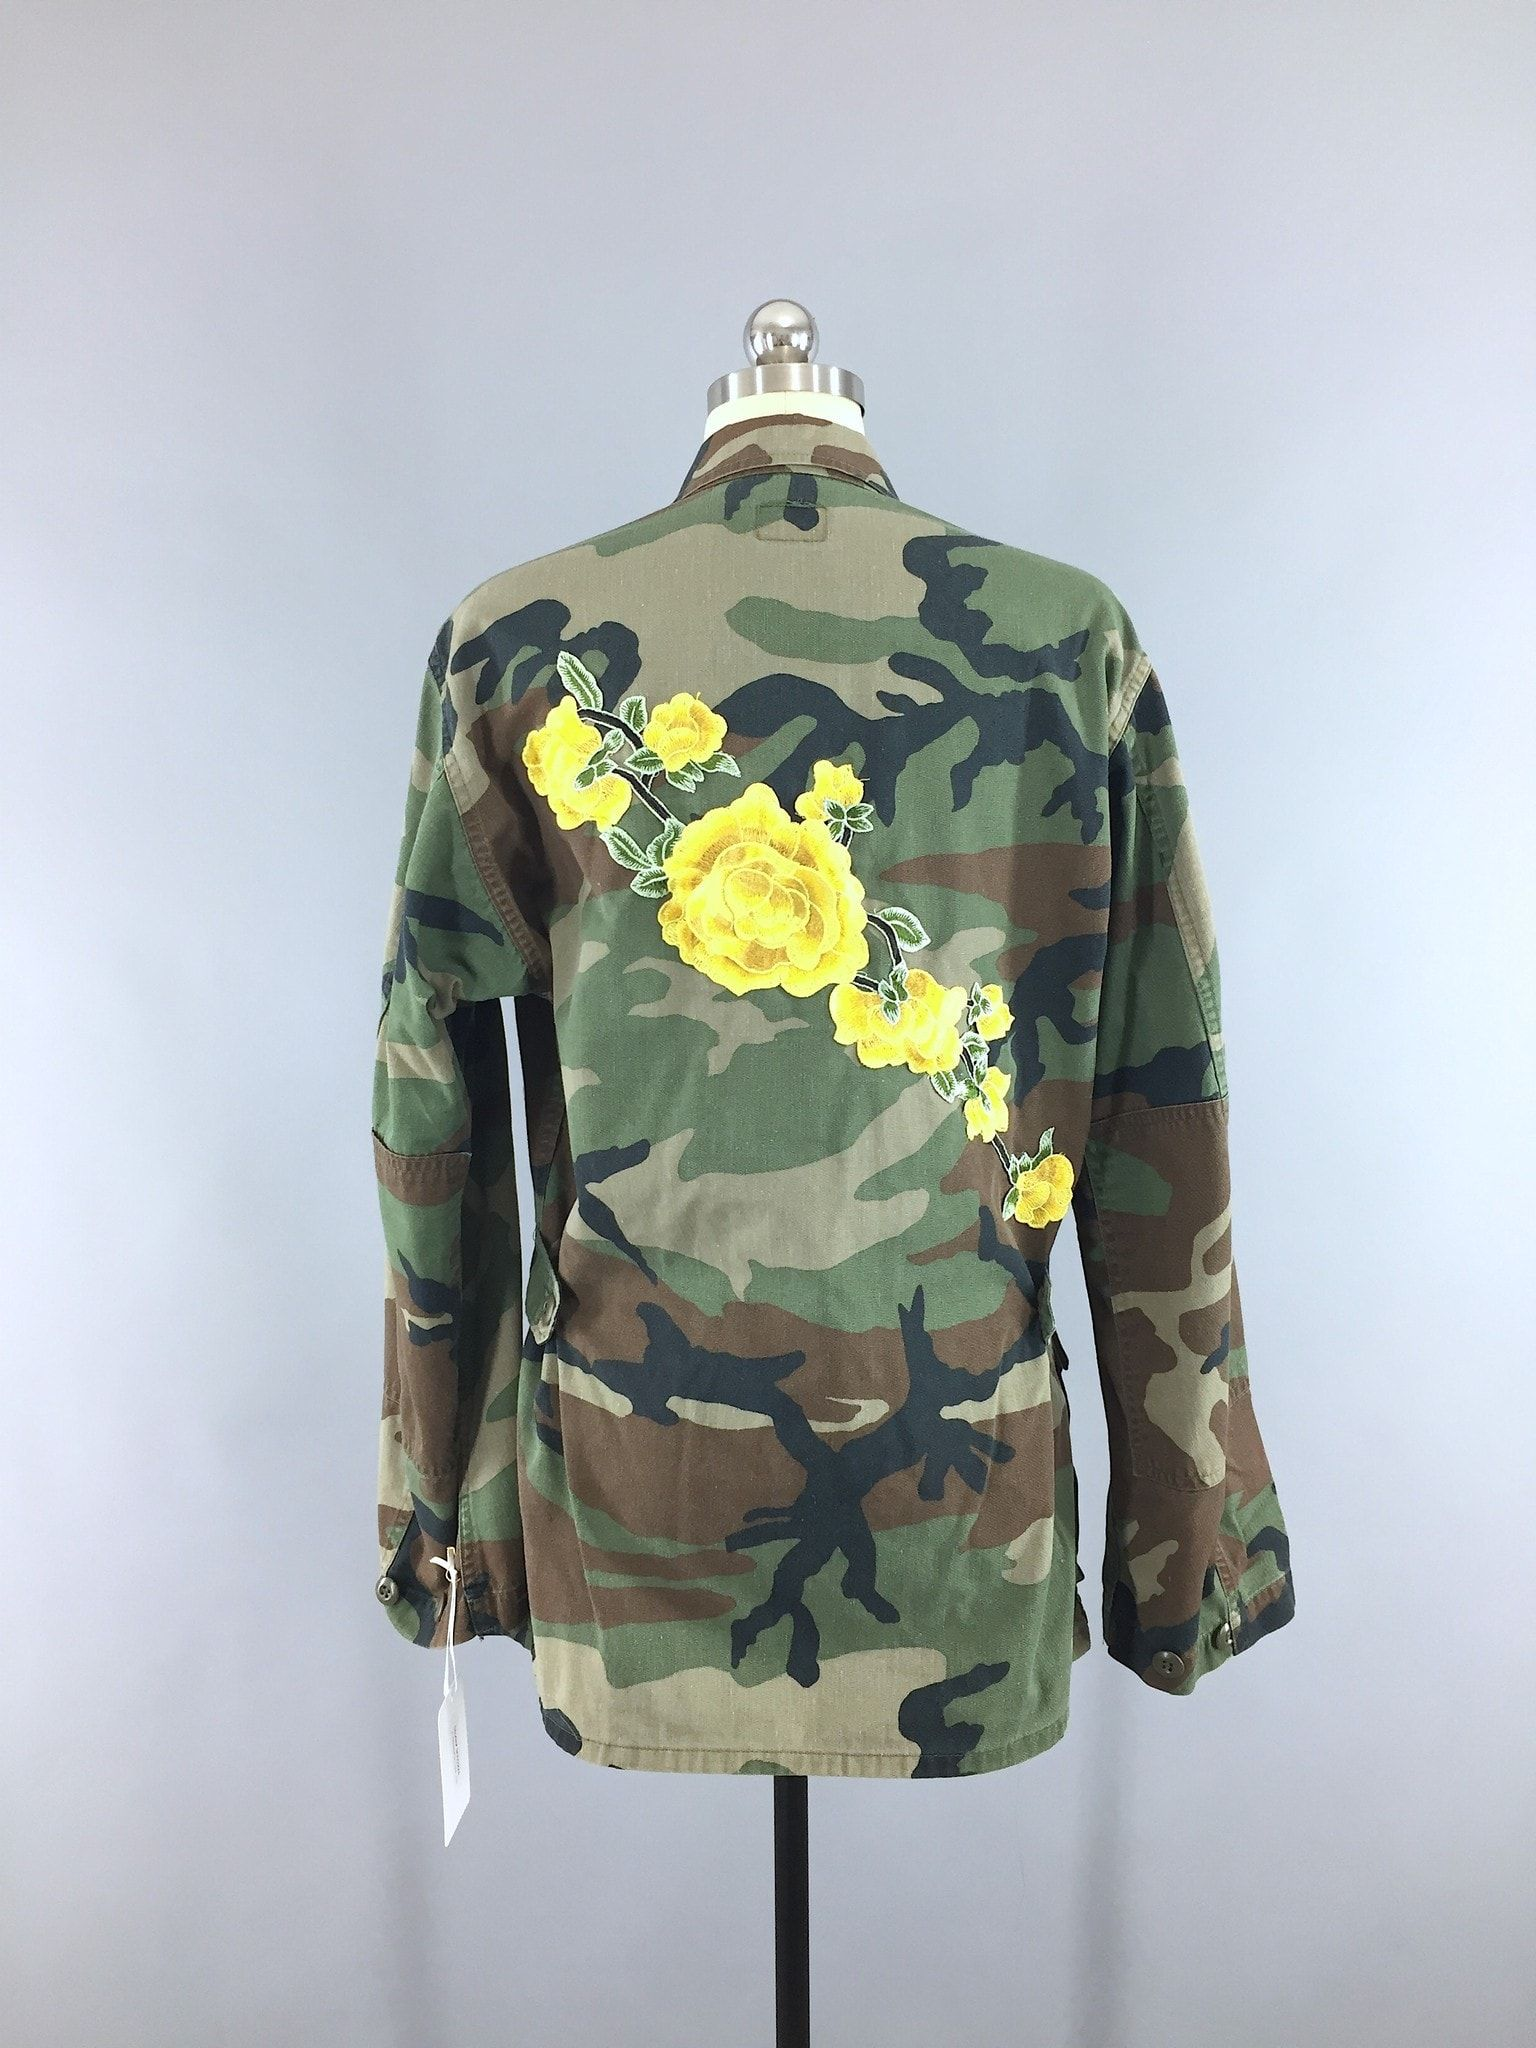 30ec20636fdb6 Awesome and completely one-of-a-kind, this vintage US Army jacket has been  enhanced with a large yellow floral embroidery patch. The floral embroidery  is ...